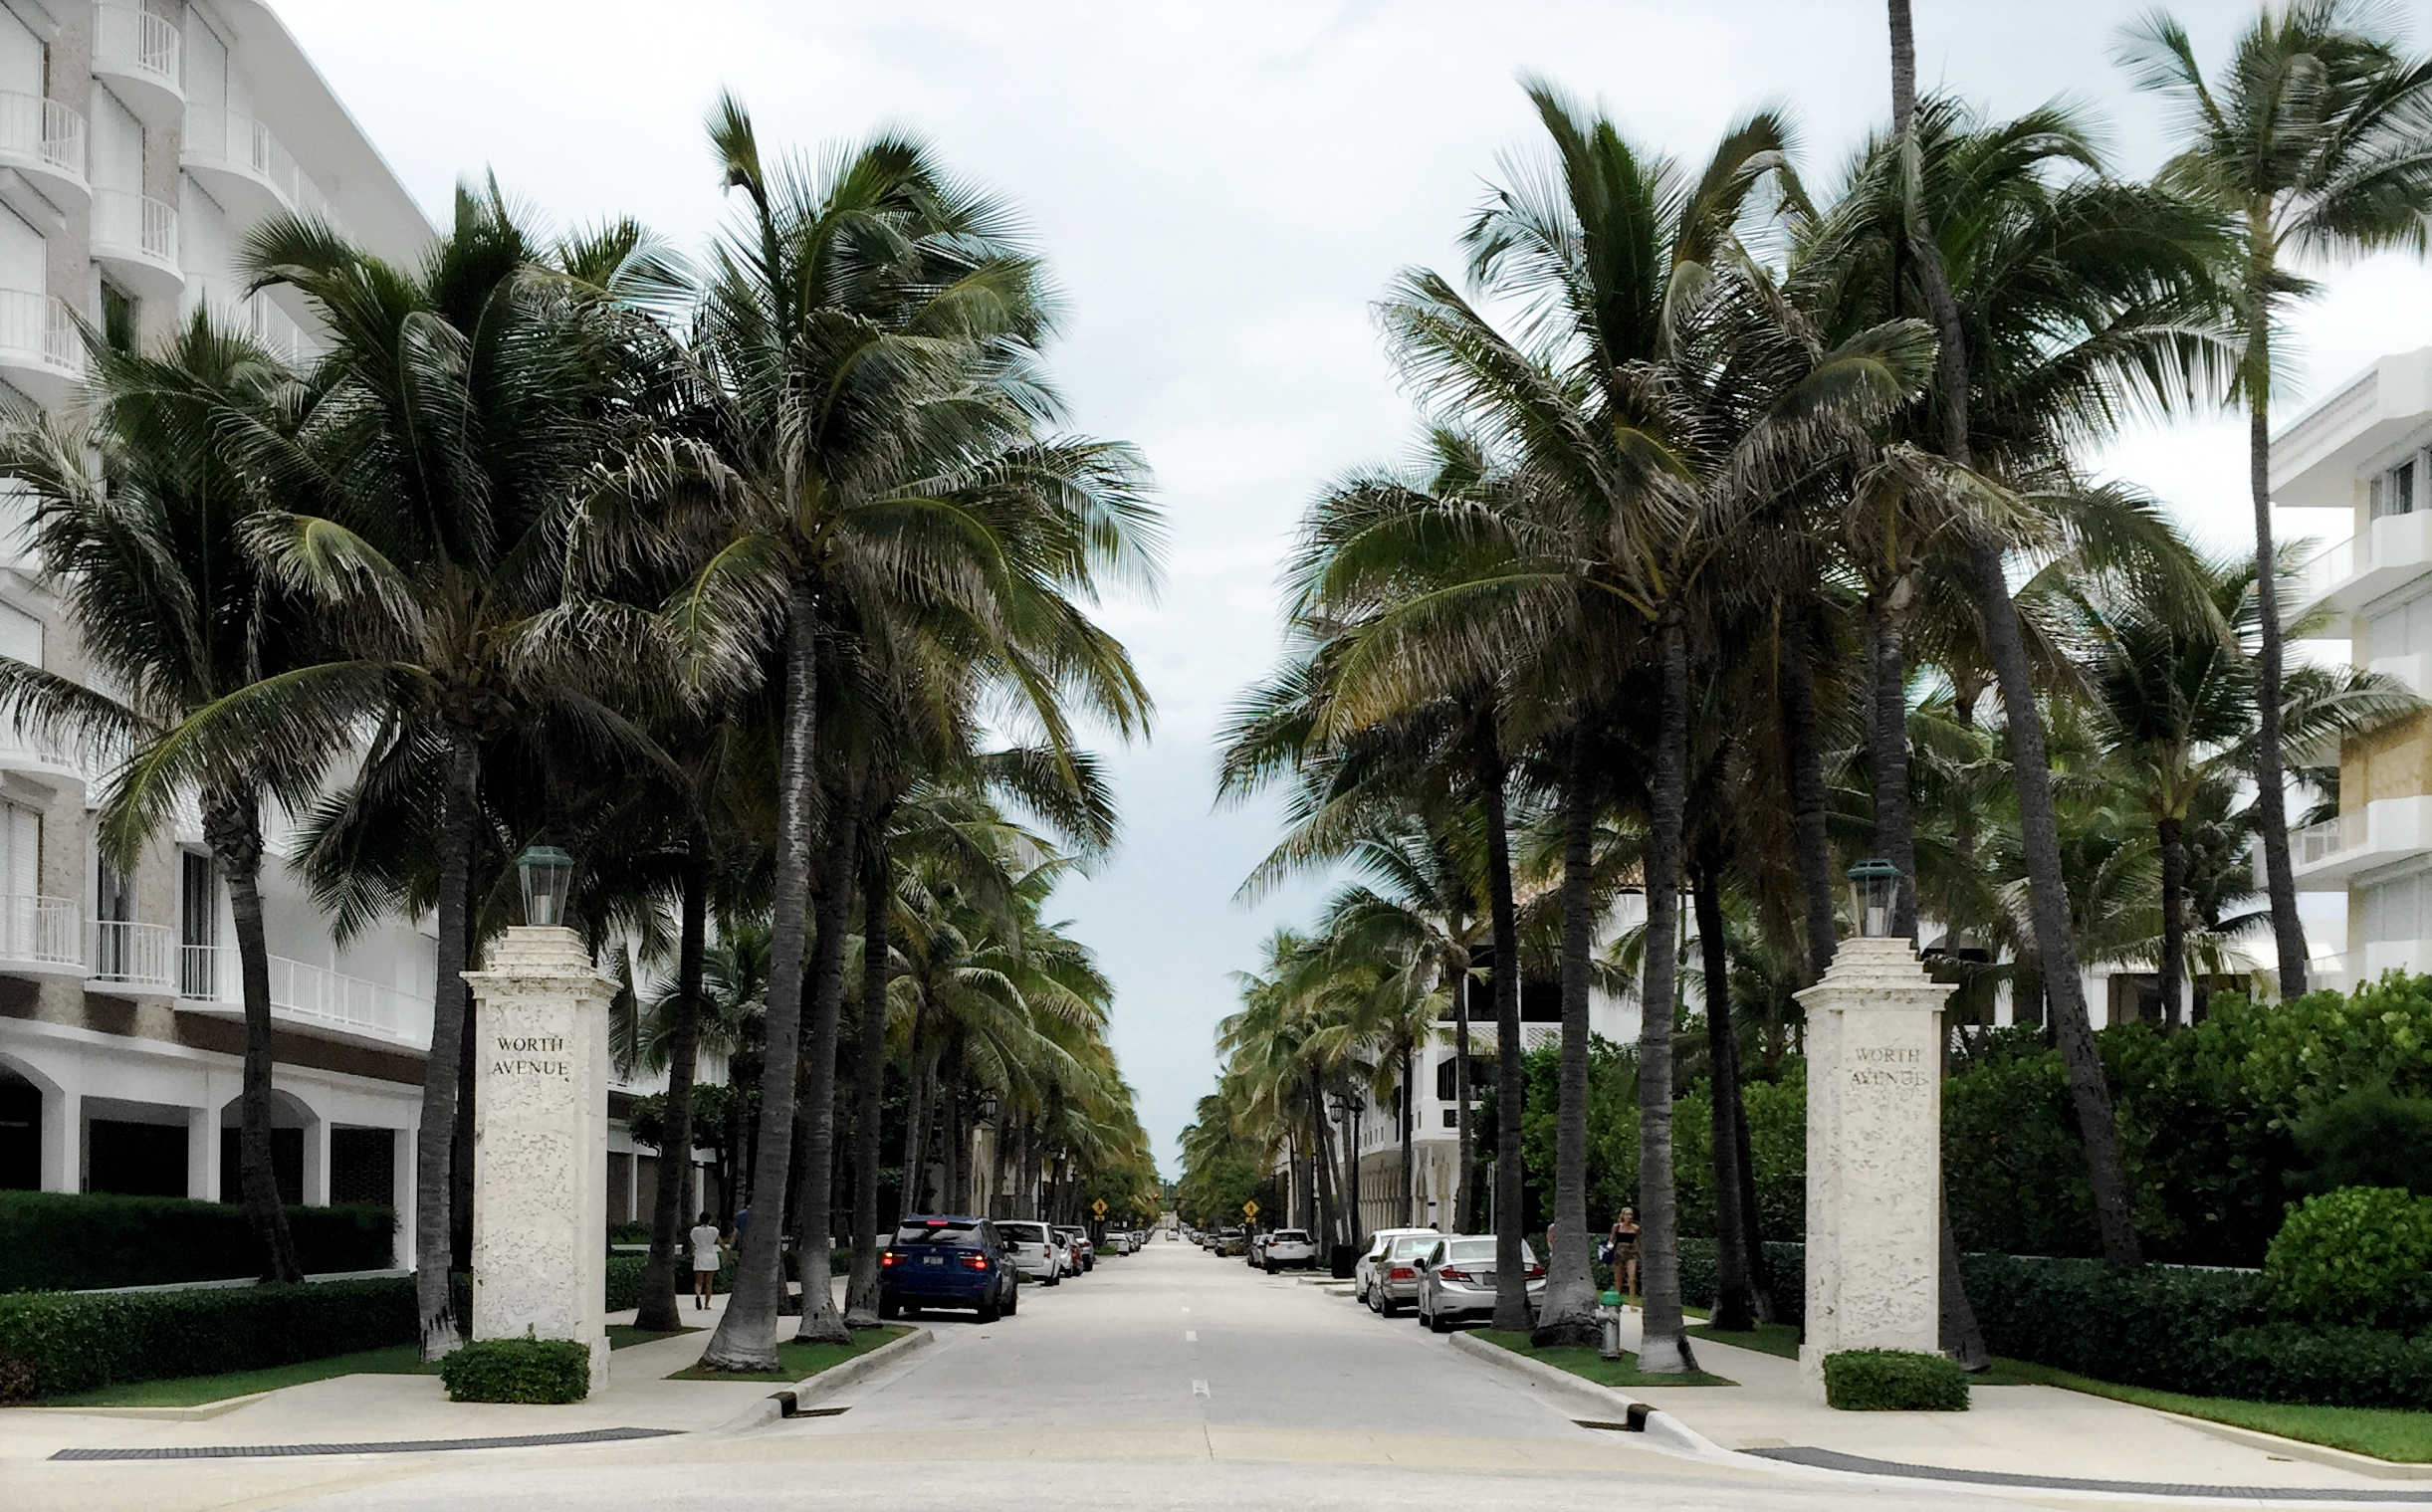 Worth Avenue - Entrance - Palm Trees and Limestone Columns - Luxury Shopping